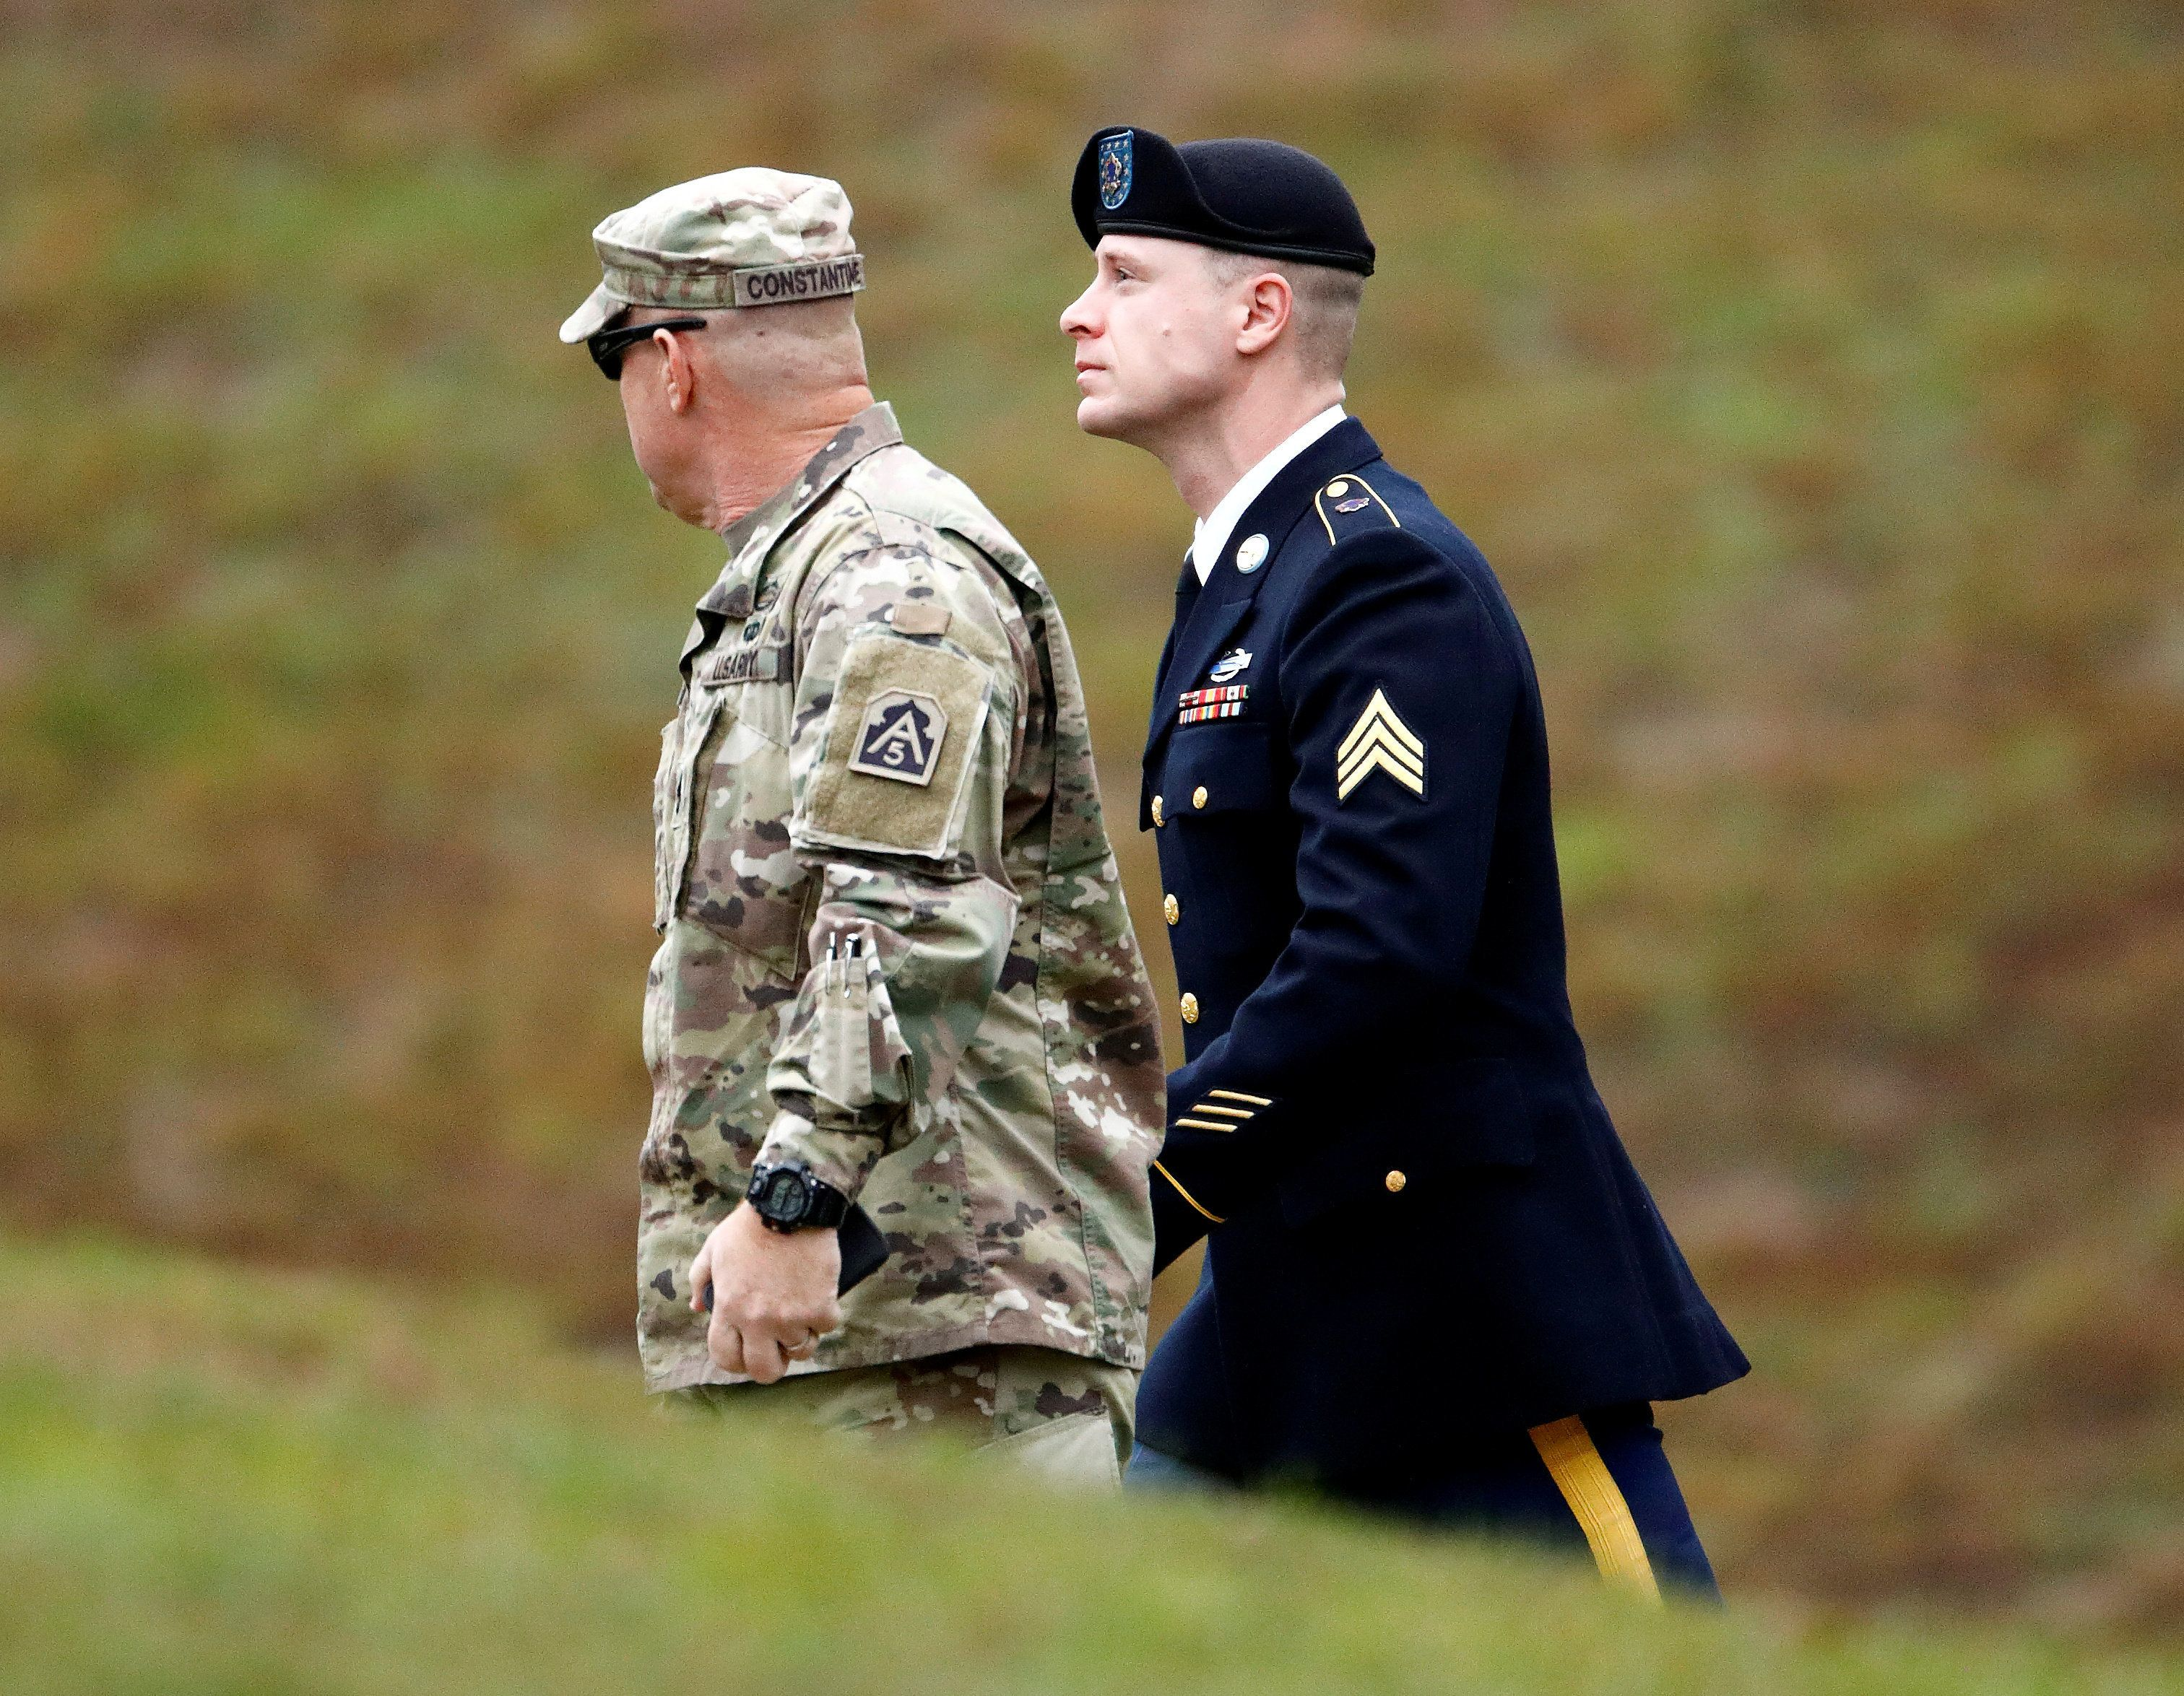 U.S. Army Sergeant Bowe Bergdahl (R) is escorted as he arrives at the courthouse for the start of sentencing proceedings in his court martial at Fort Bragg, North Carolina, U.S., October 23, 2017.  REUTERS/Jonathan Drake     TPX IMAGES OF THE DAY